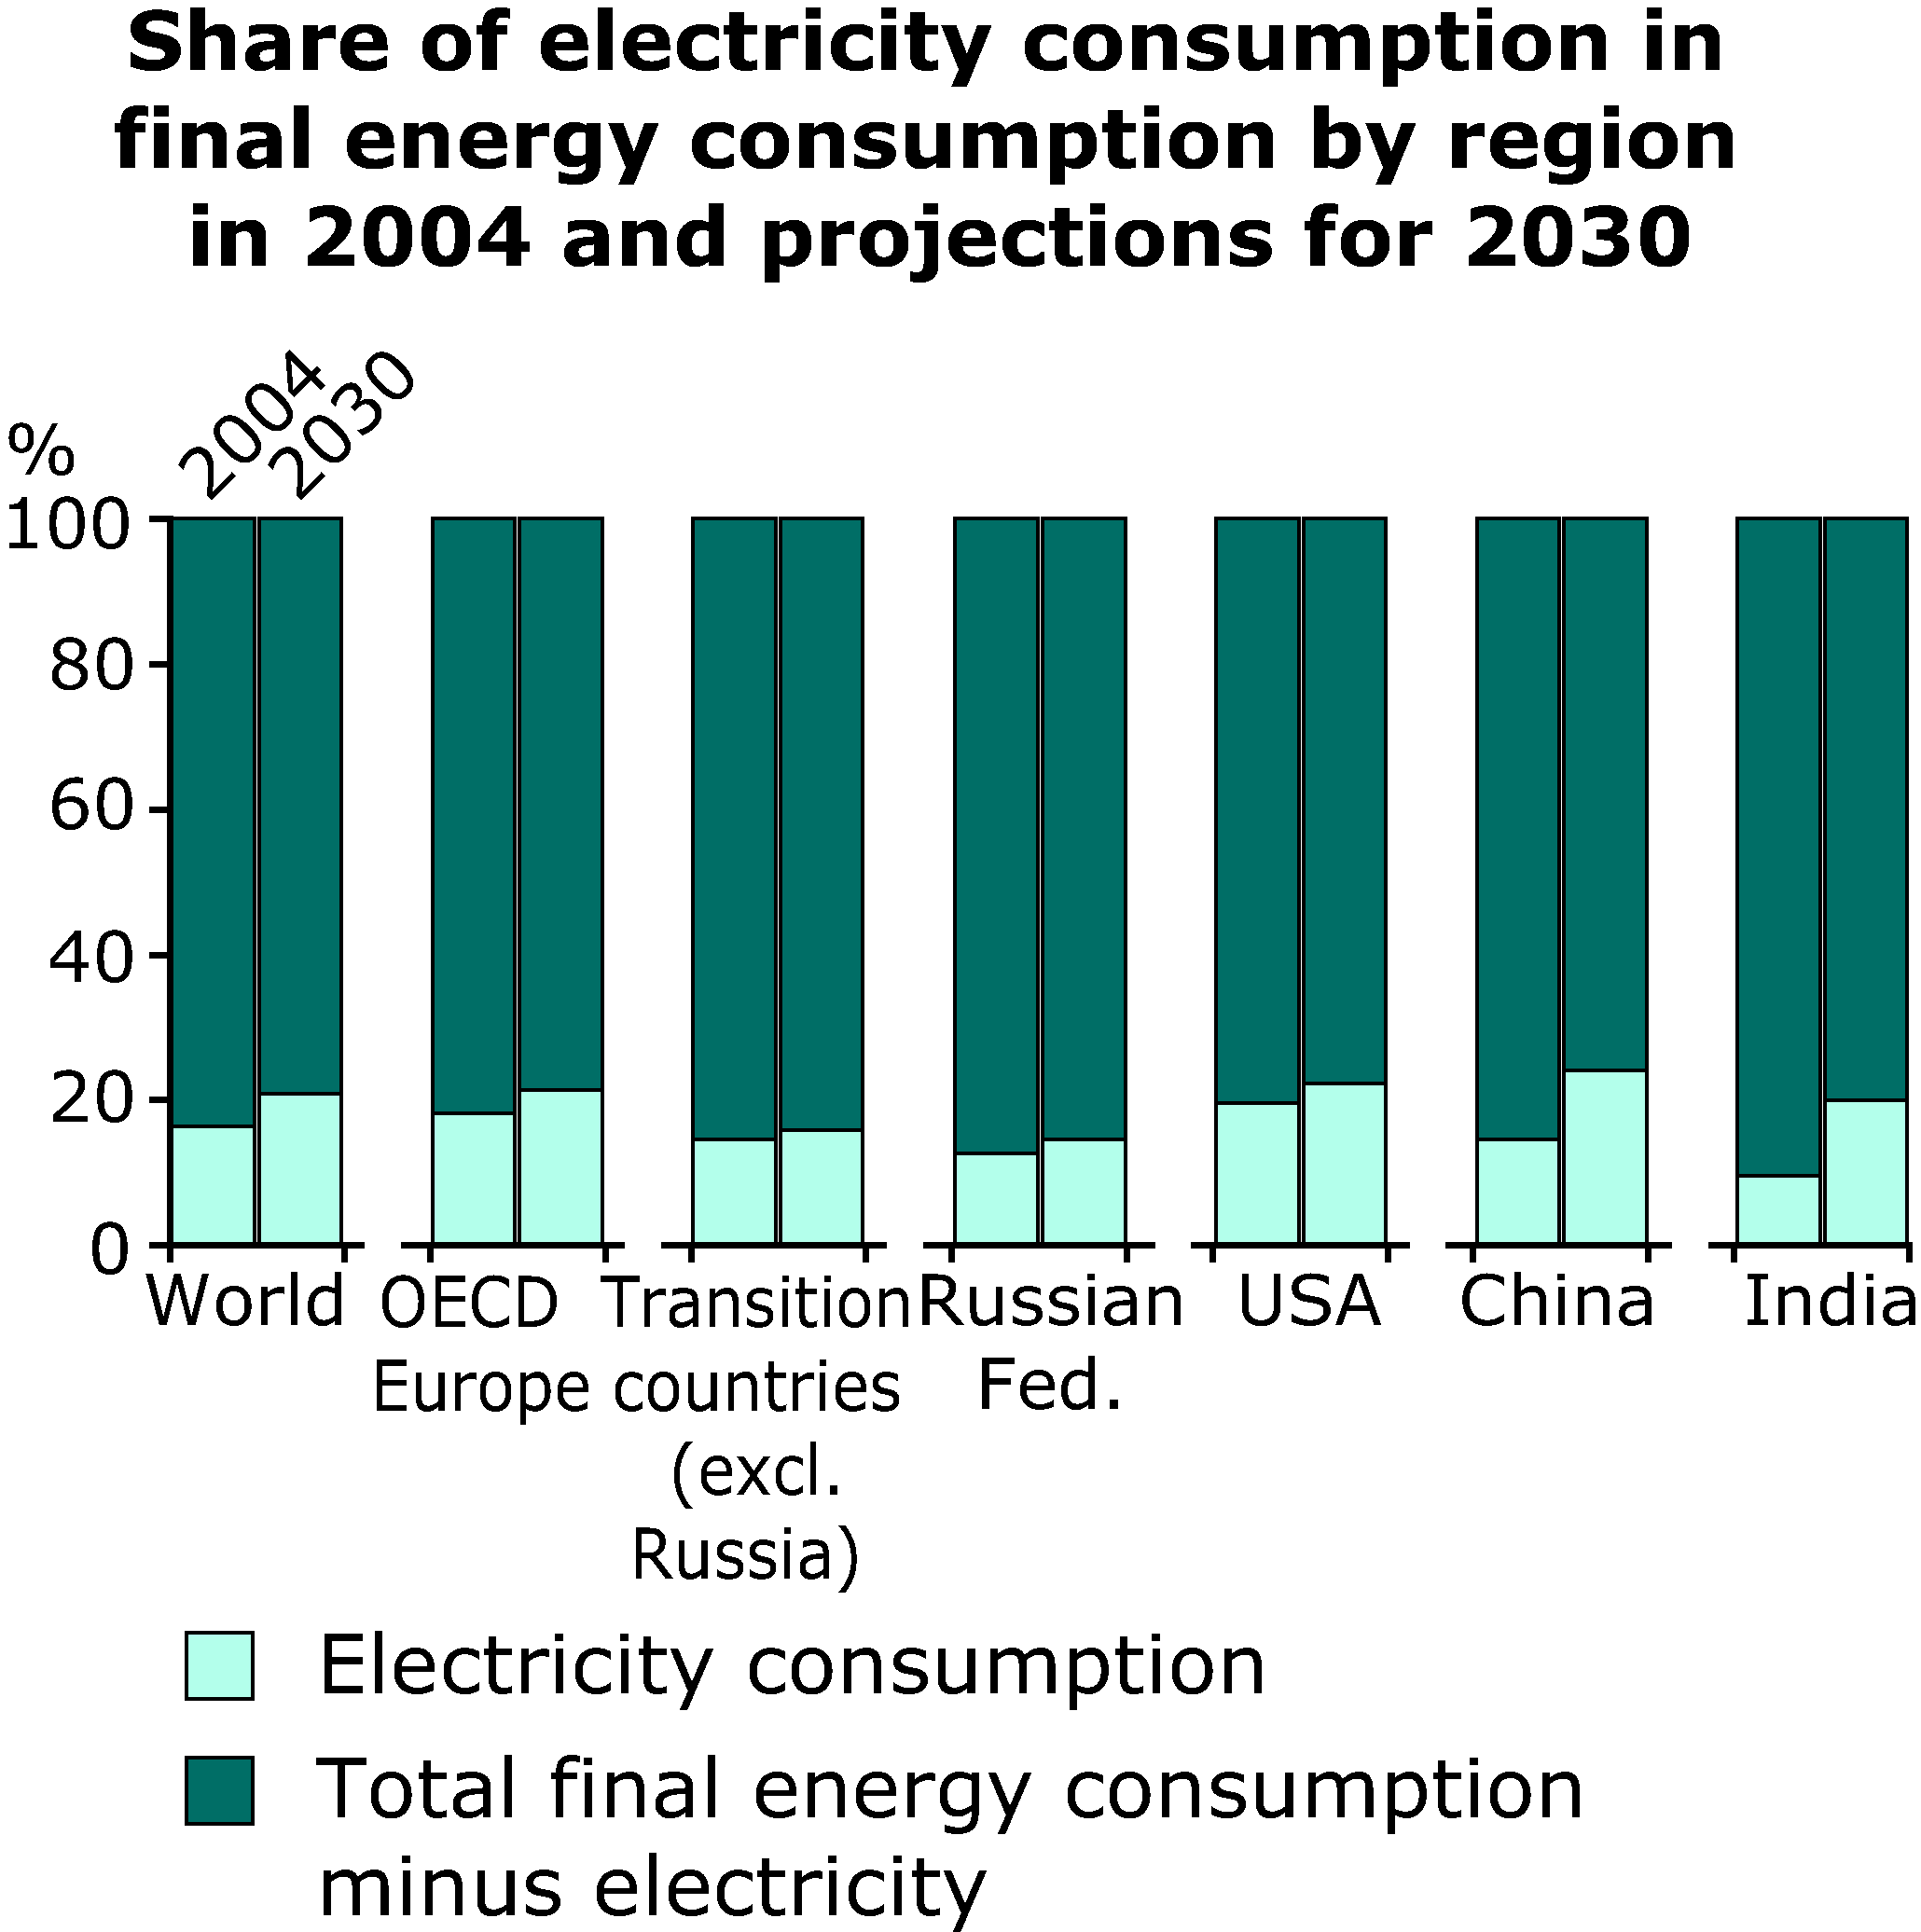 Share of electricity consumption in  final energy consumption by region in 2004 and projections for 2030